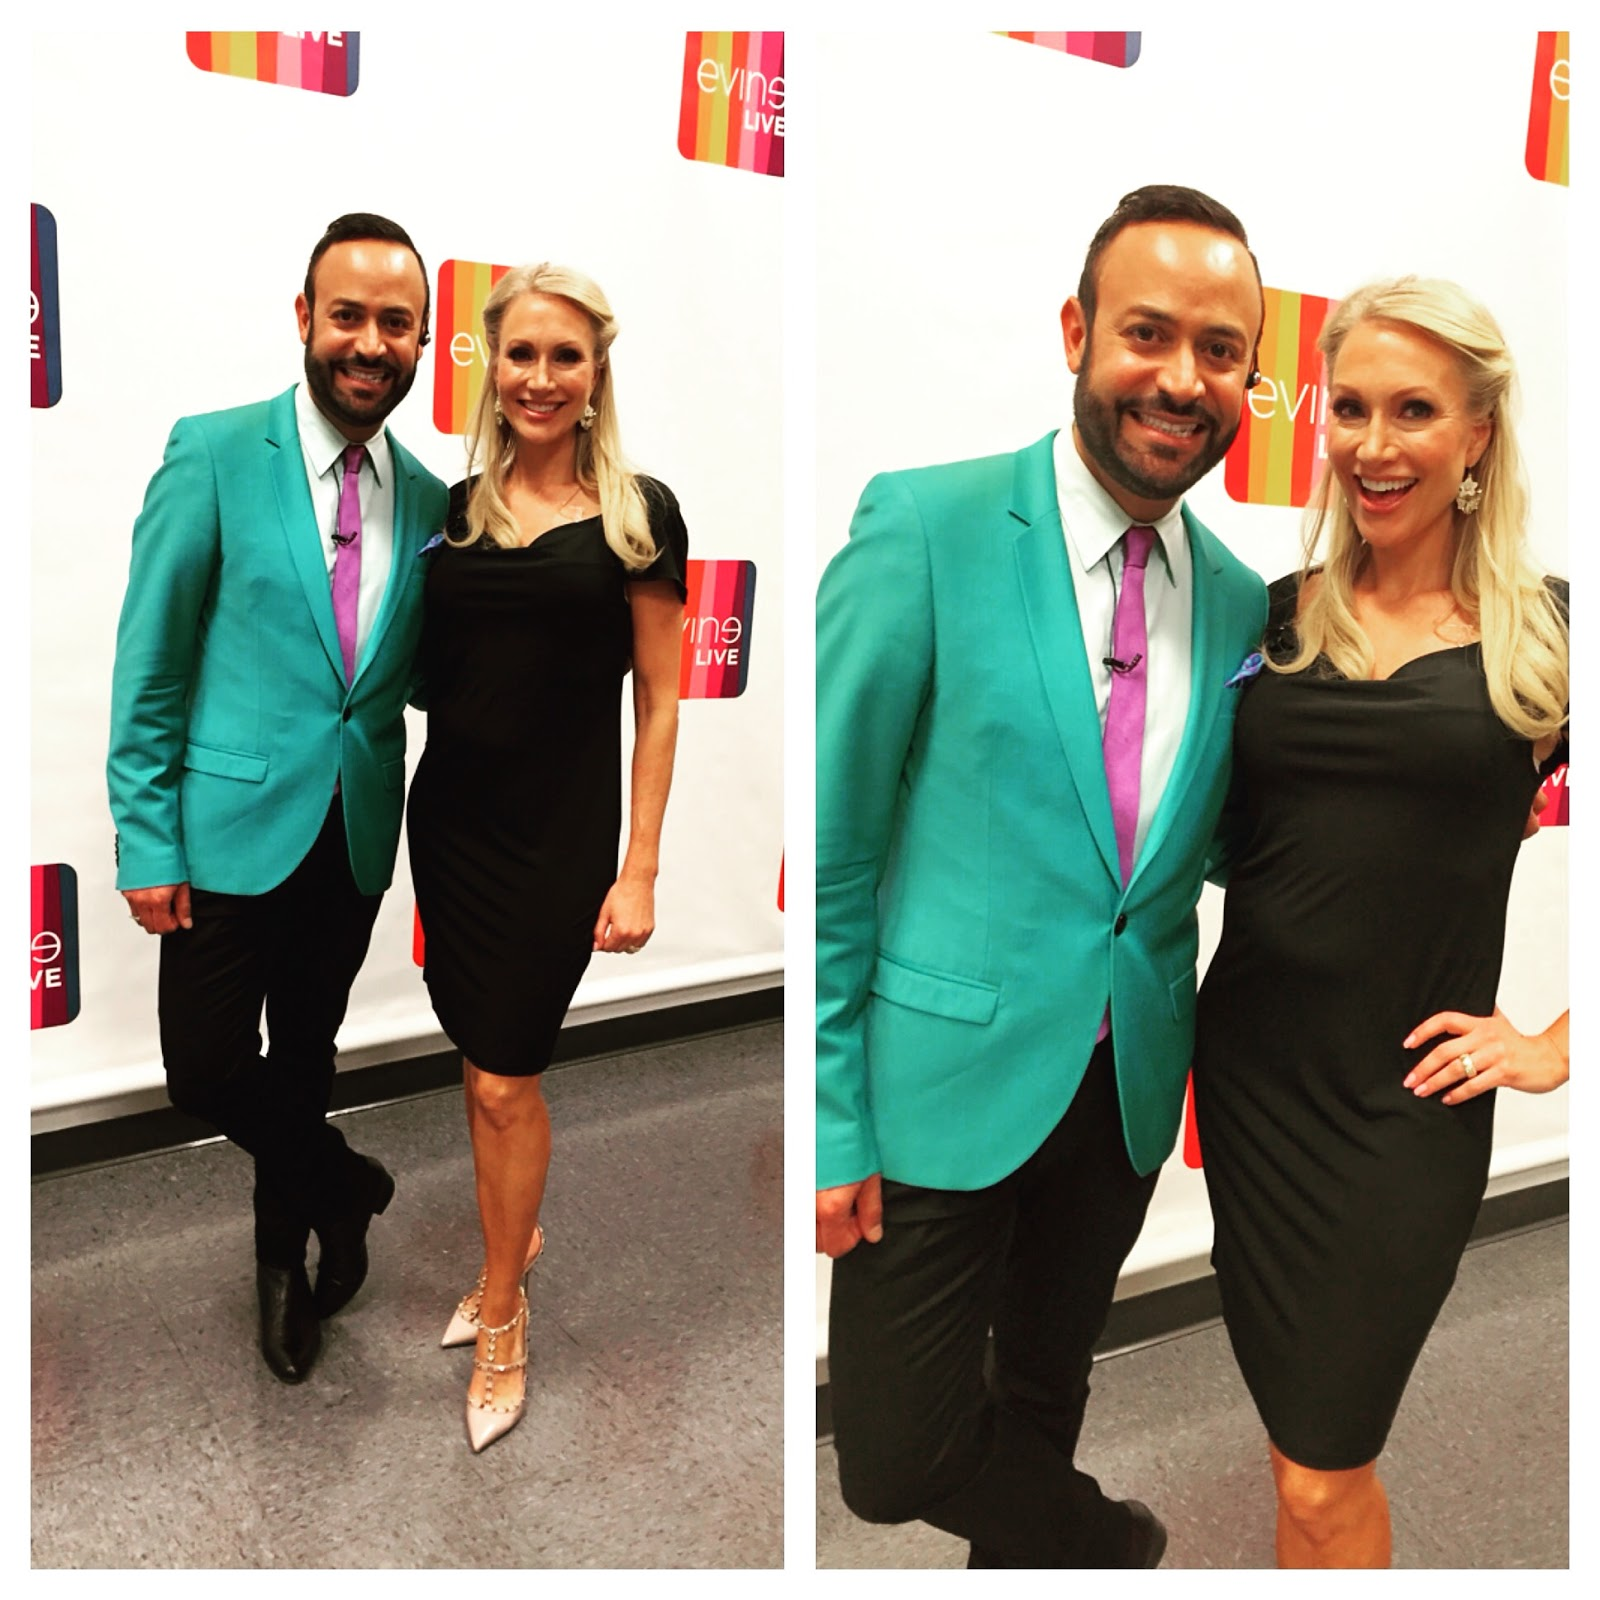 6bb60c630704d A fab premiere nick verreos and evine live host wendi russo evine live  shopping network jpg